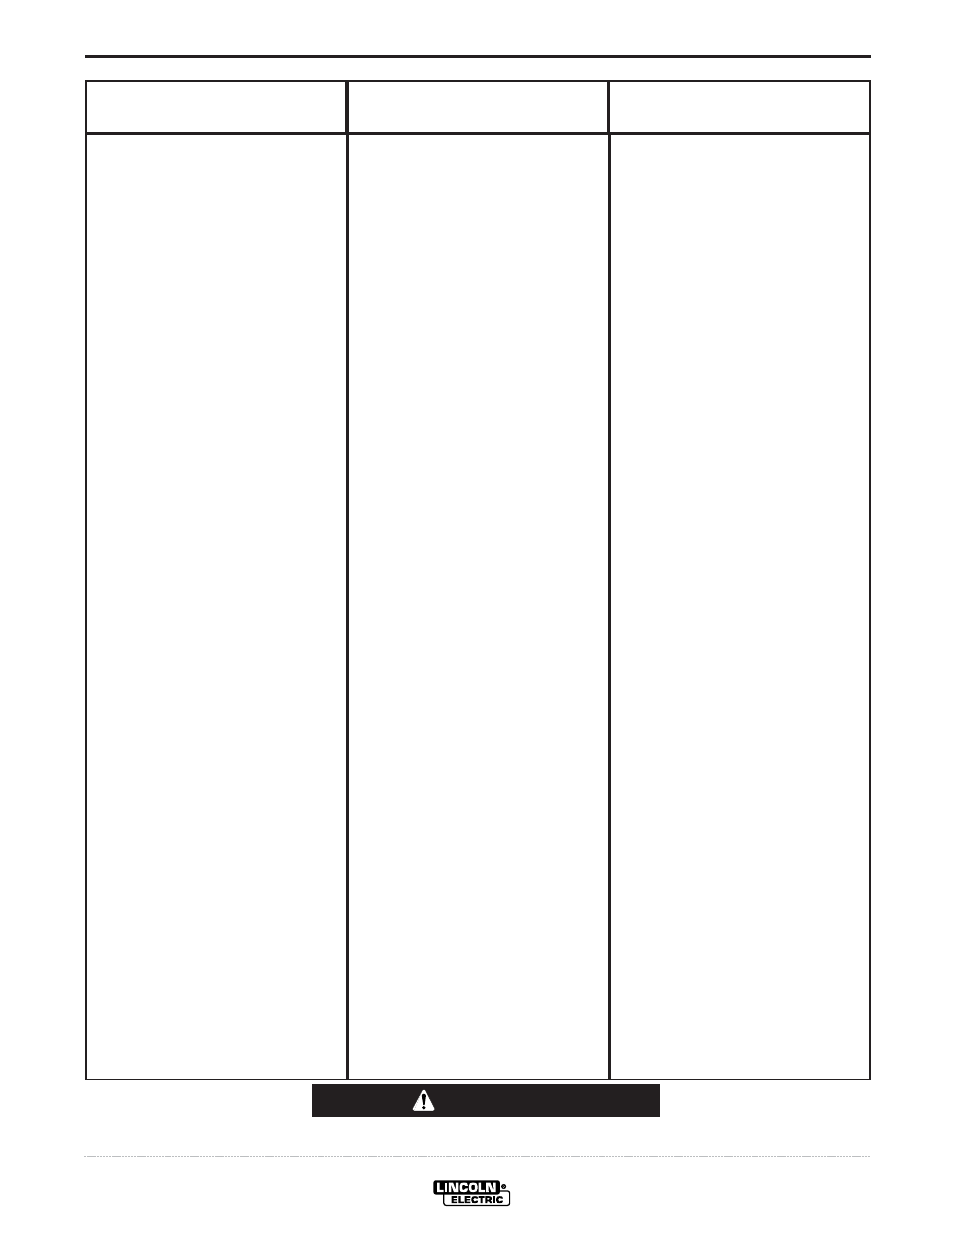 Troubleshooting, Caution | Lincoln Electric IM637 PRO-CUT 55 User Manual |  Page 26 / 40